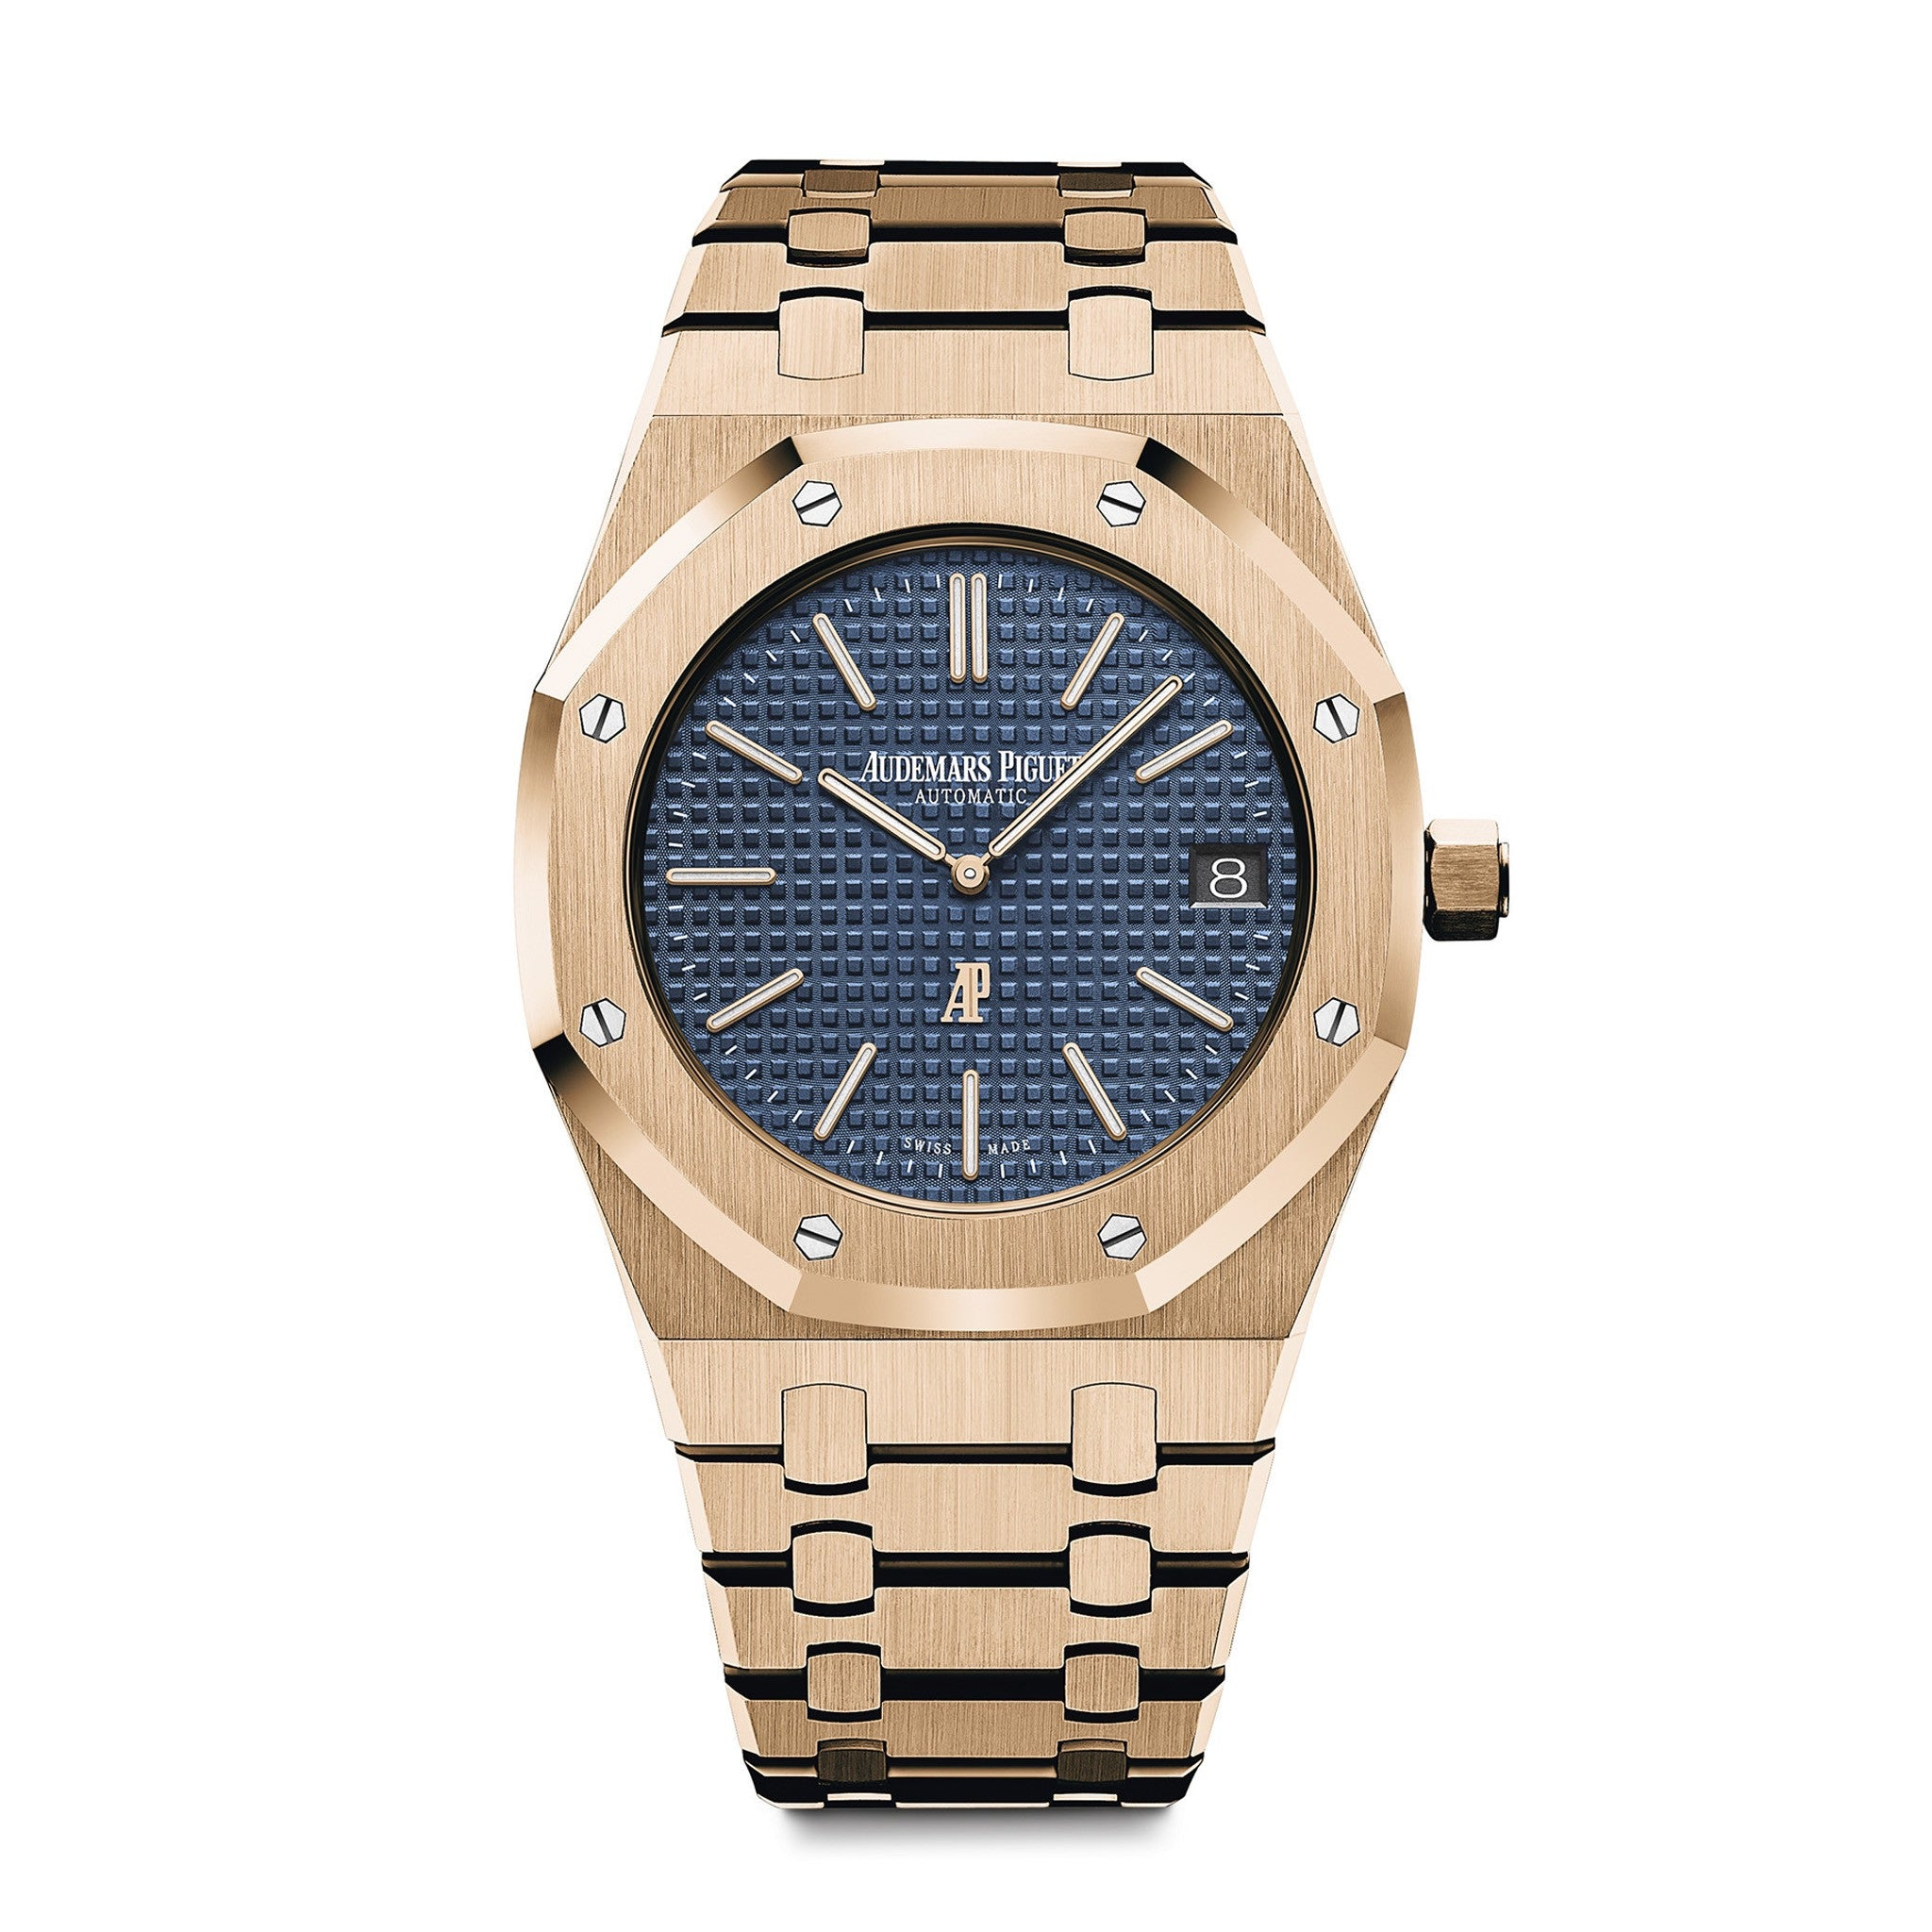 Royal Oak Extra Thin 15202OR.OO.1240OR.01 - Audemars Piguet